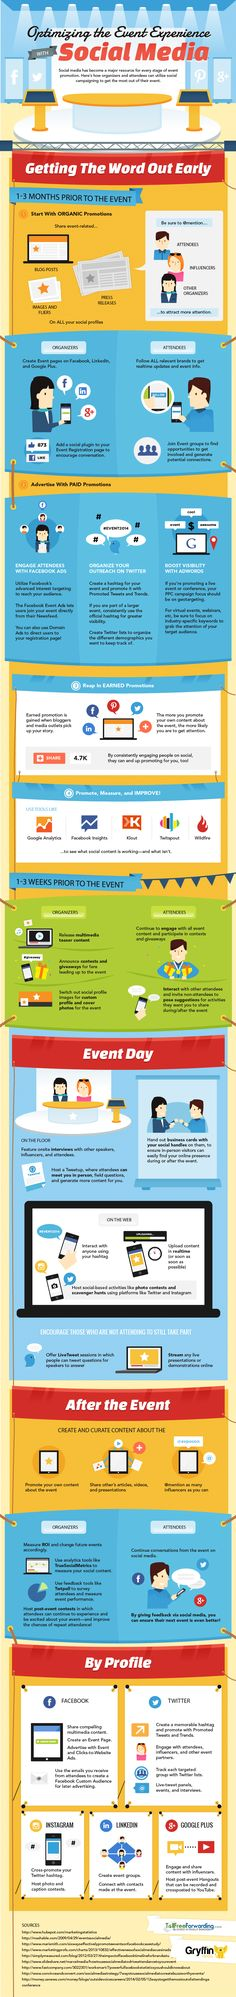 How To Use Social Media To Promote #Events  #SocialMedia #Marketing